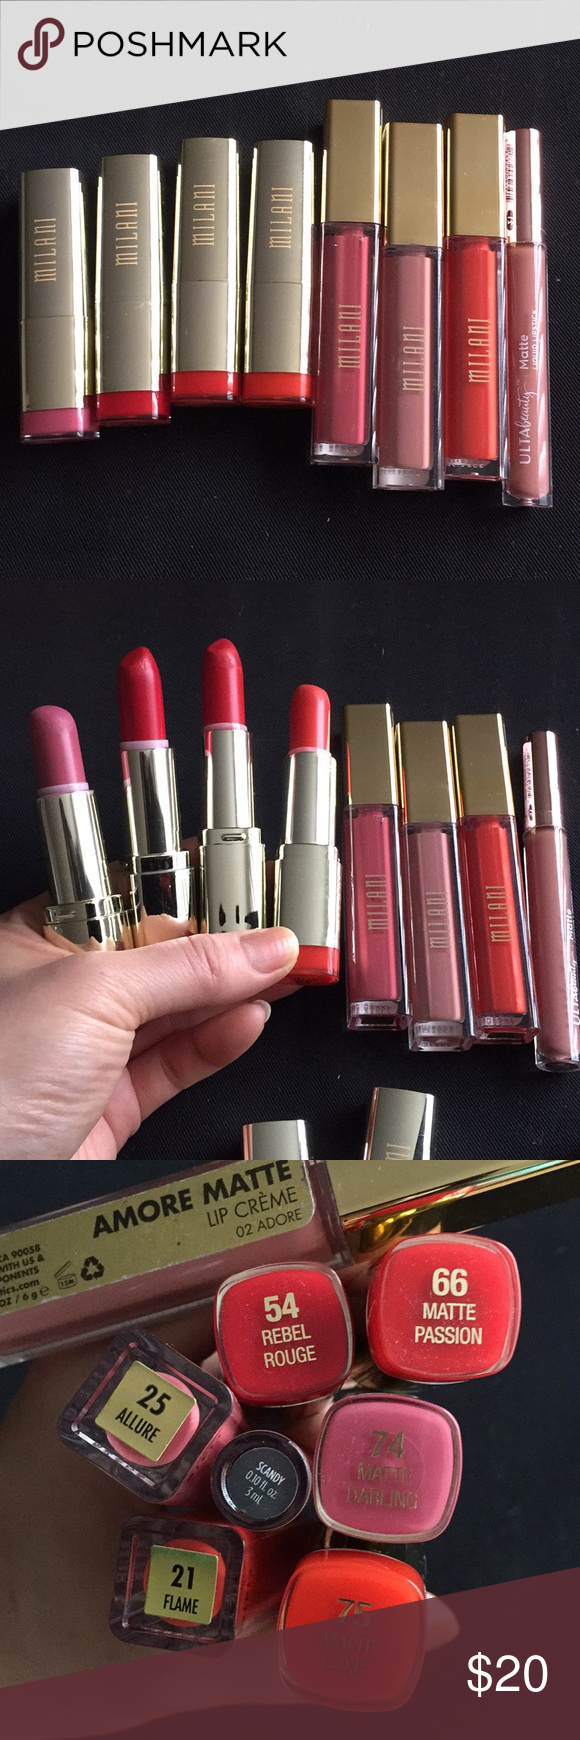 7 milani lipsticks bundle+one free Ulta! 7 milani lip products bundle+free Ulta Matte liquid lipstick in color Scandy!! There are 3 Milani statement lipsticks& 1 not Matte, all used but still lotta life left!! Also 3 milani Amore Matte liquid lip creme, 2 of them( allure & flame) just swatched never used. Please see photos for usages and colors!! Milani Makeup Lipstick